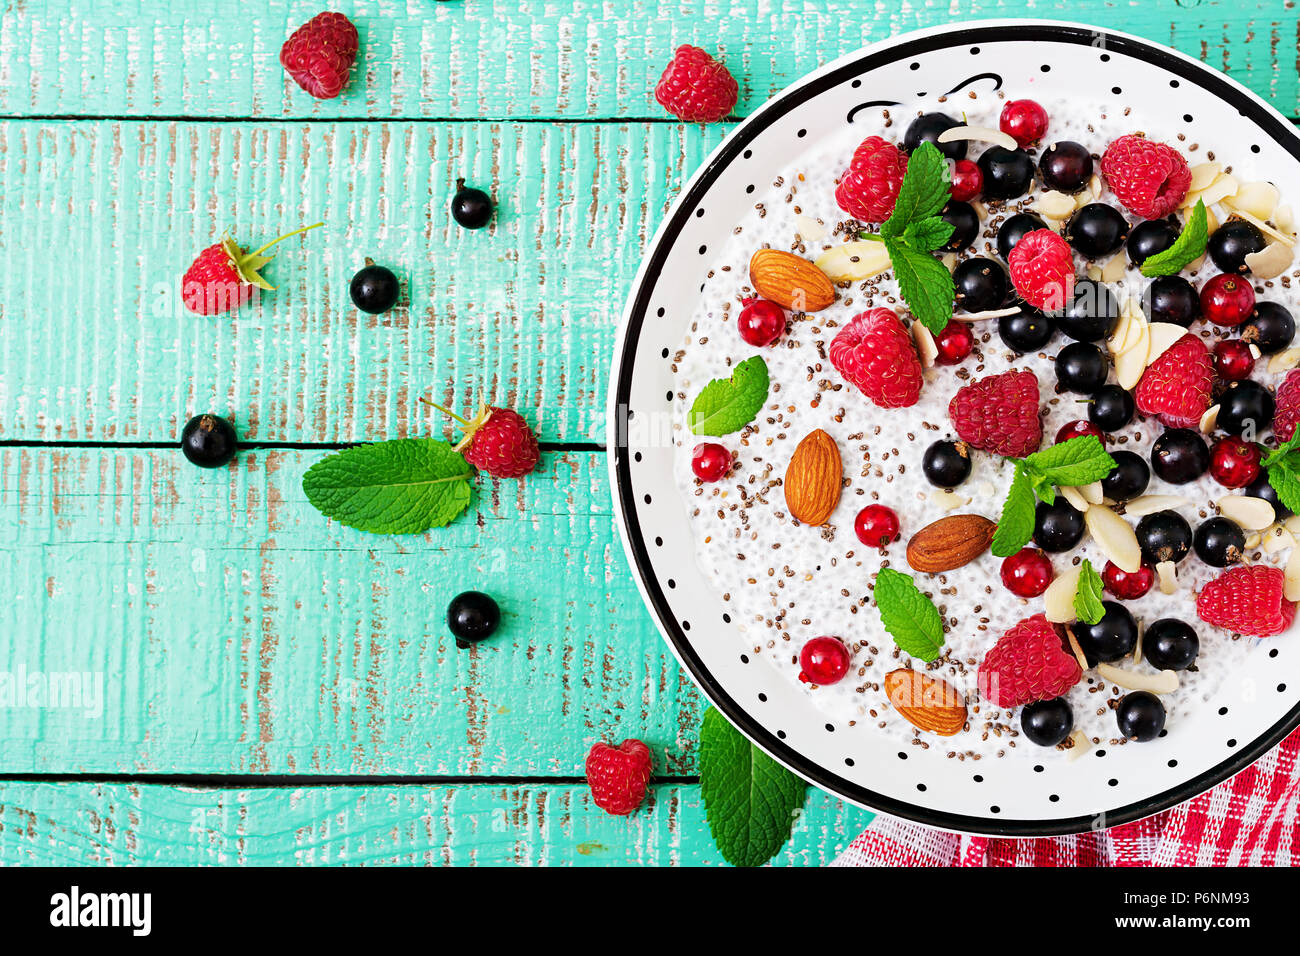 Detox and healthy superfoods breakfast in bowl. Vegan almond milk chia seeds pudding with raspberries, blackberries and  mint. Top view. Flat lay - Stock Image